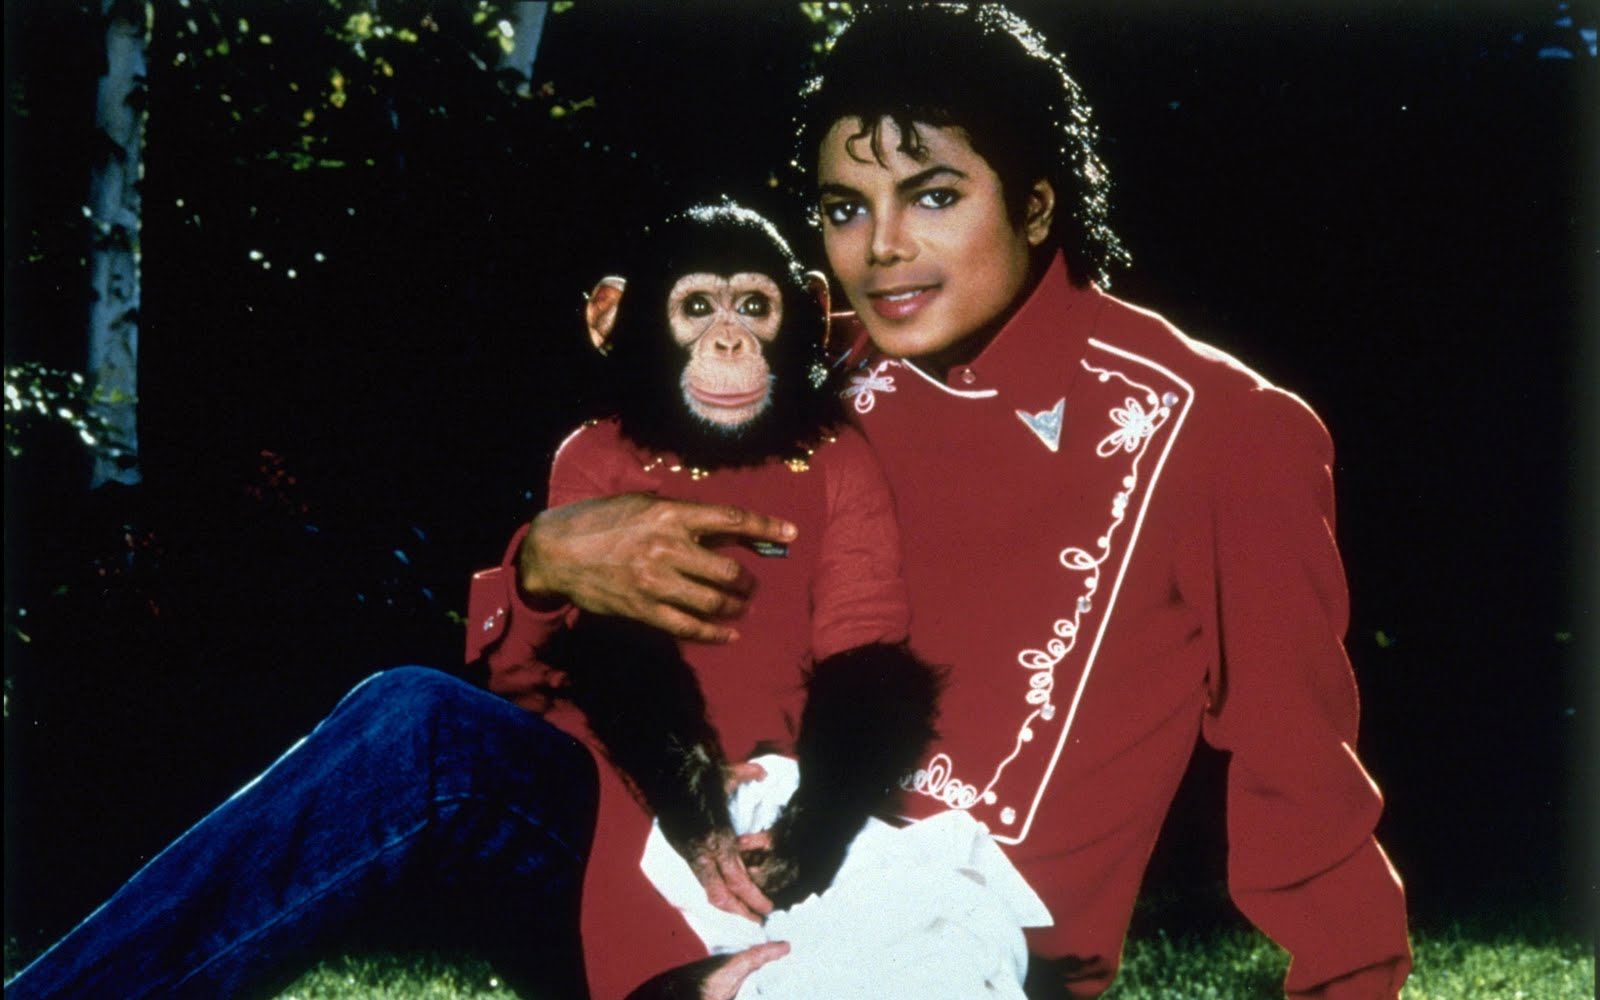 M: Michael Jackson: Searching for